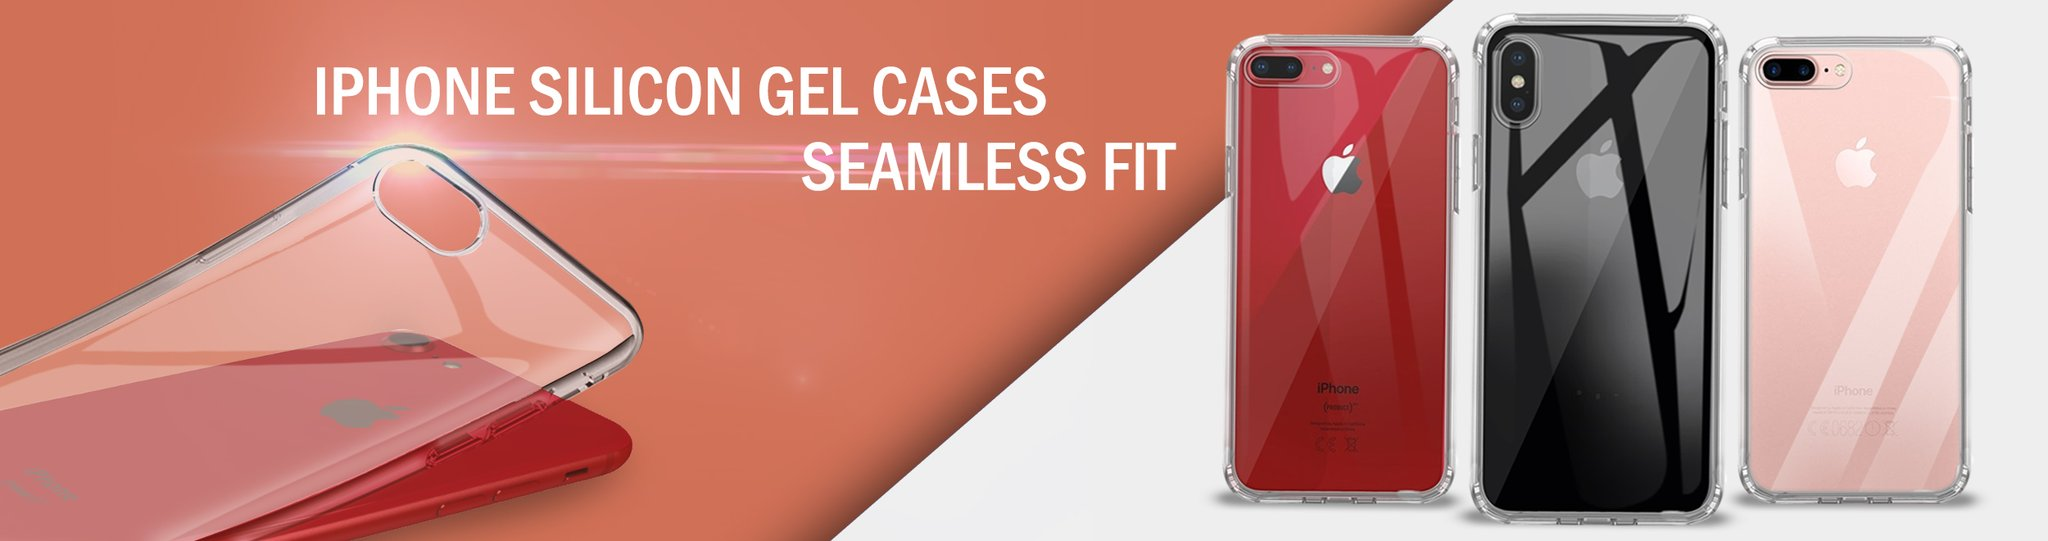 iPhone XS Case iPhone X Case Slim Soft TPU Case Flexible Silicone Cover Shock Absorb Air Cushion Gel Case Clear